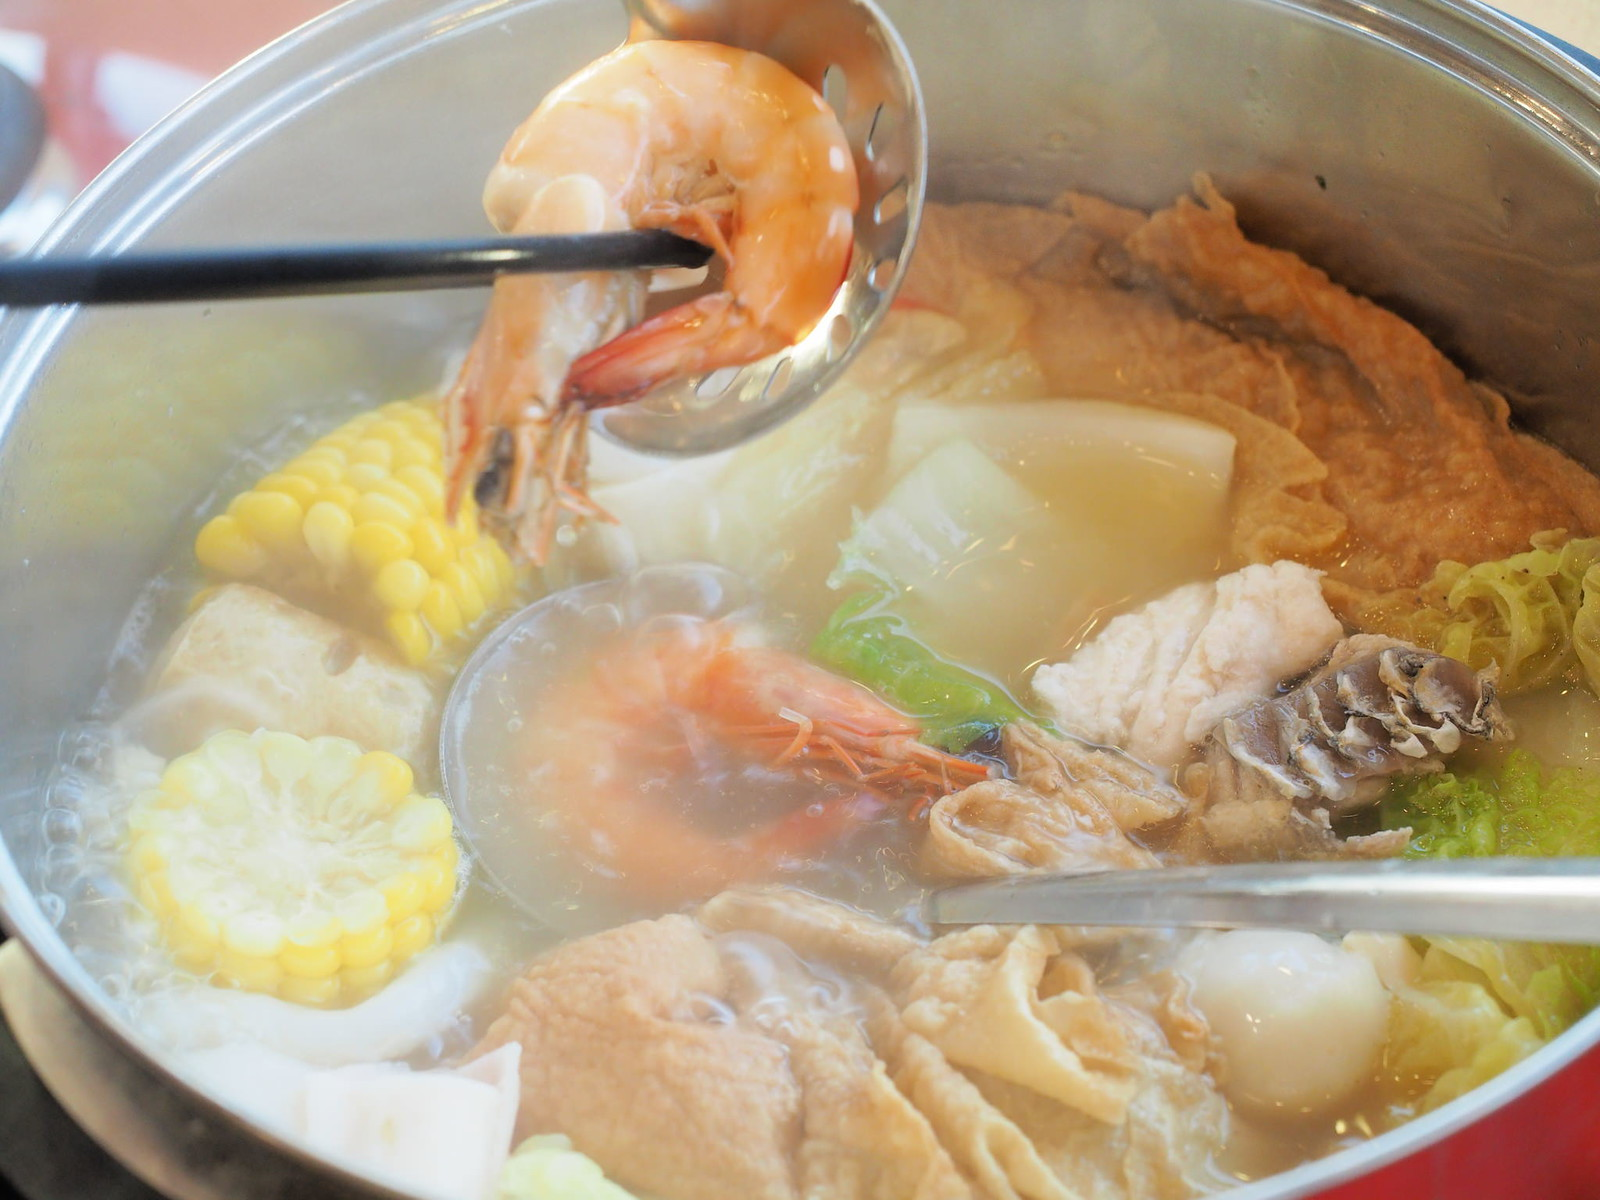 Taking the prawn out from the steamboat